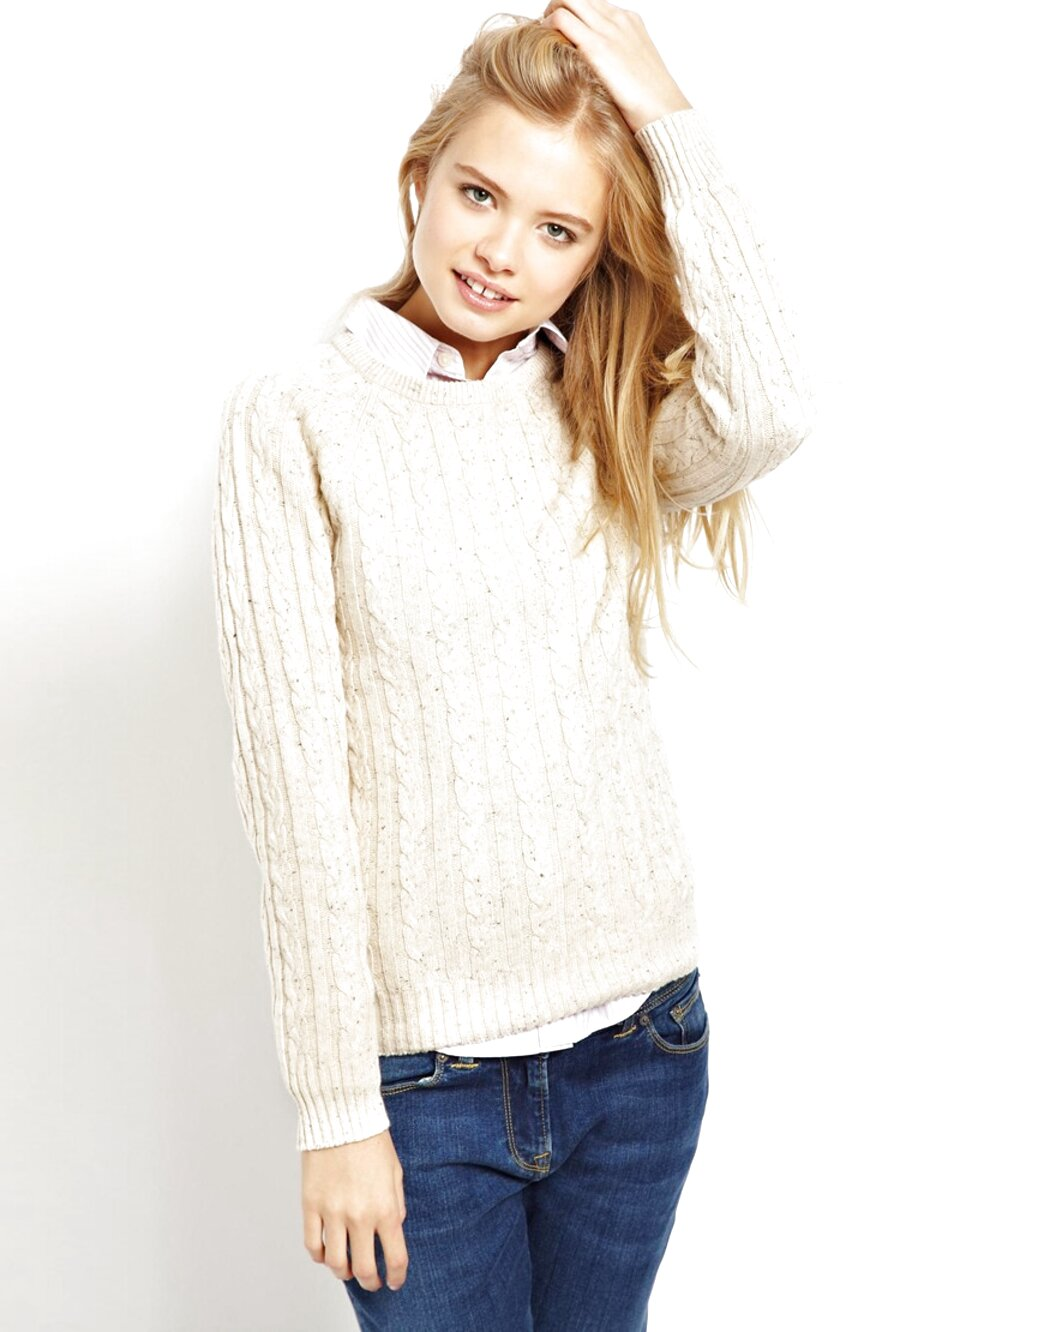 jack wills cable knit jumper for sale